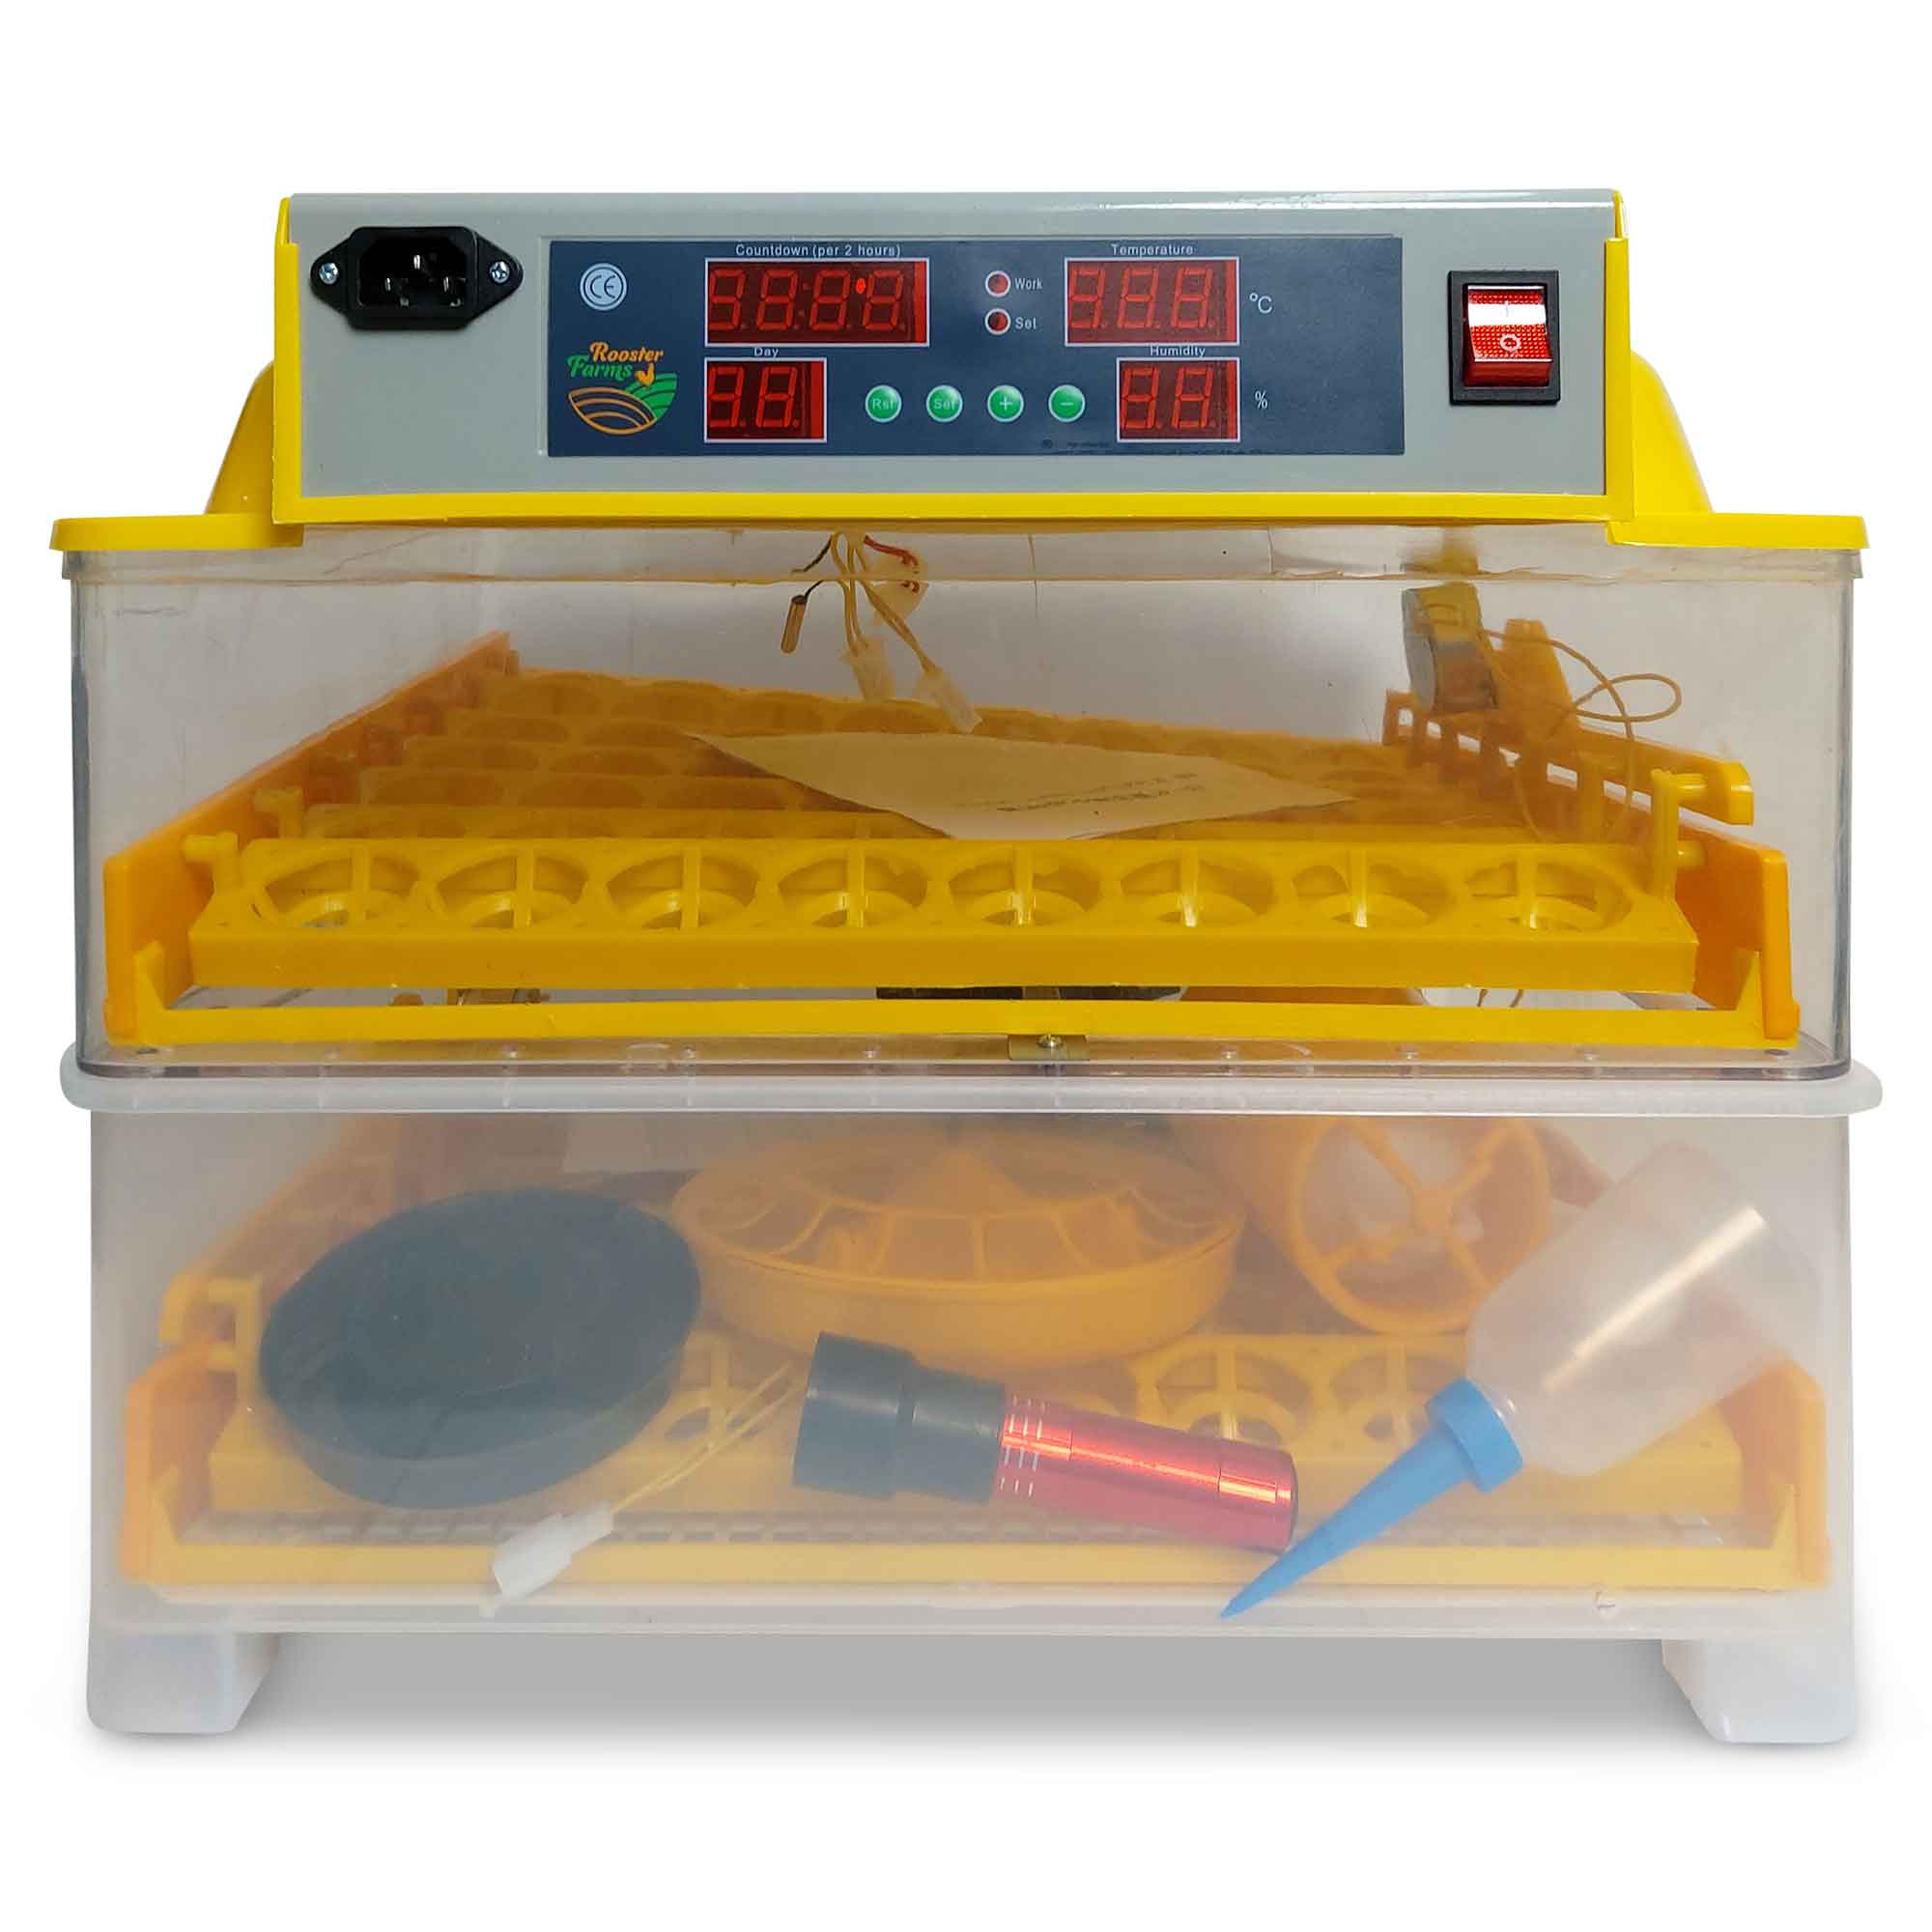 Electric 112 Egg Incubator + Accessories Hatching Eggs Chicken Quail Duck